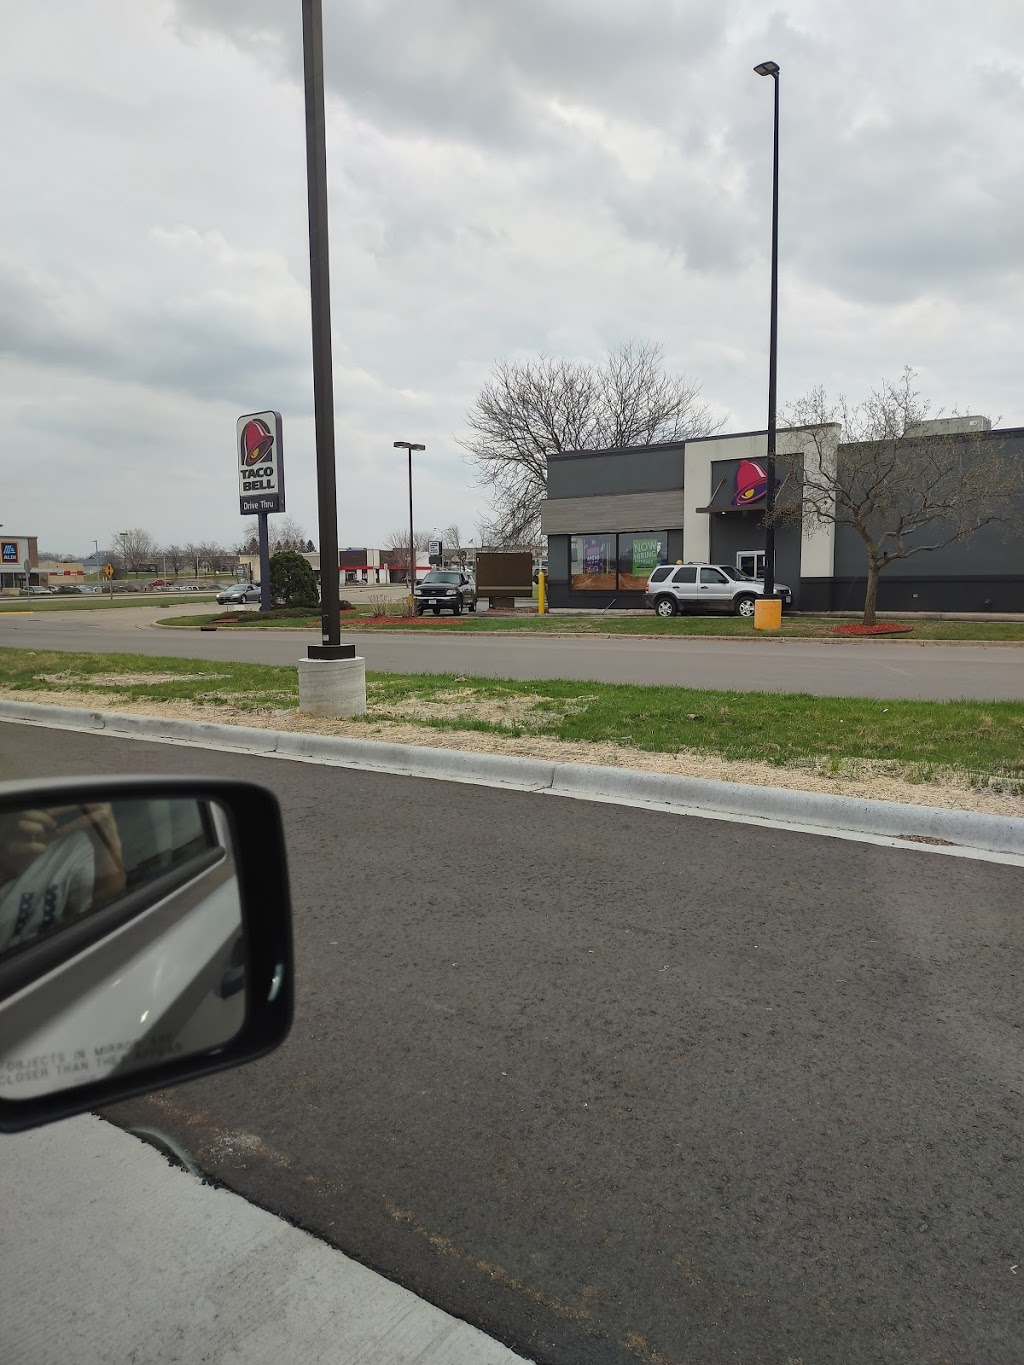 Burger King | restaurant | 2940 New Pinery Rd, Portage, WI 53901, USA